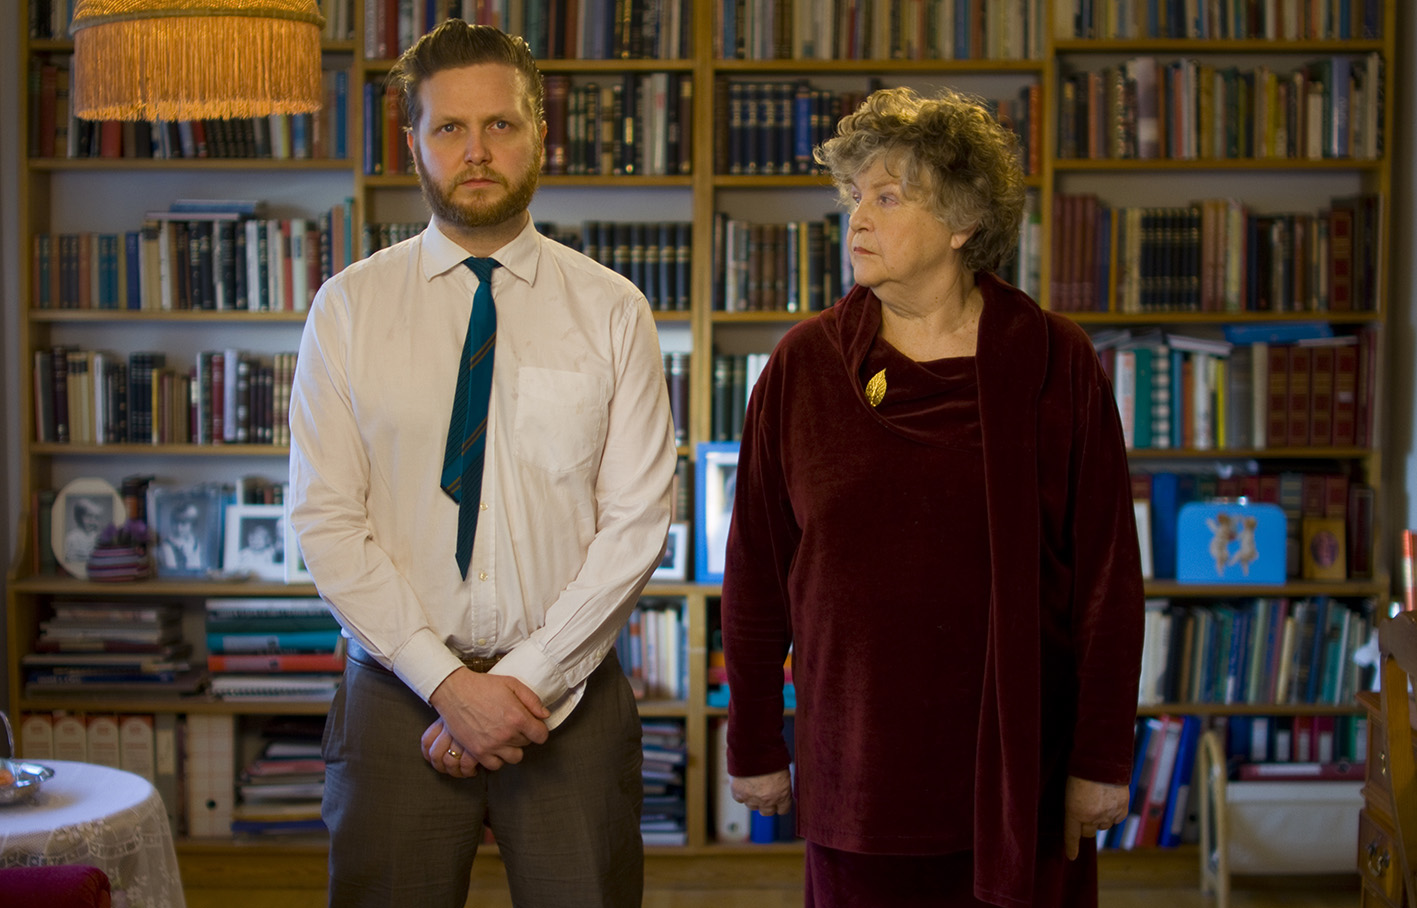 Ragnar Kjartansson, Me and My Mother 2010, 2010. Courtesy: Ragnar Kjartansson; i8 Gallery, Reykjavik; Luring Augustine, New York.